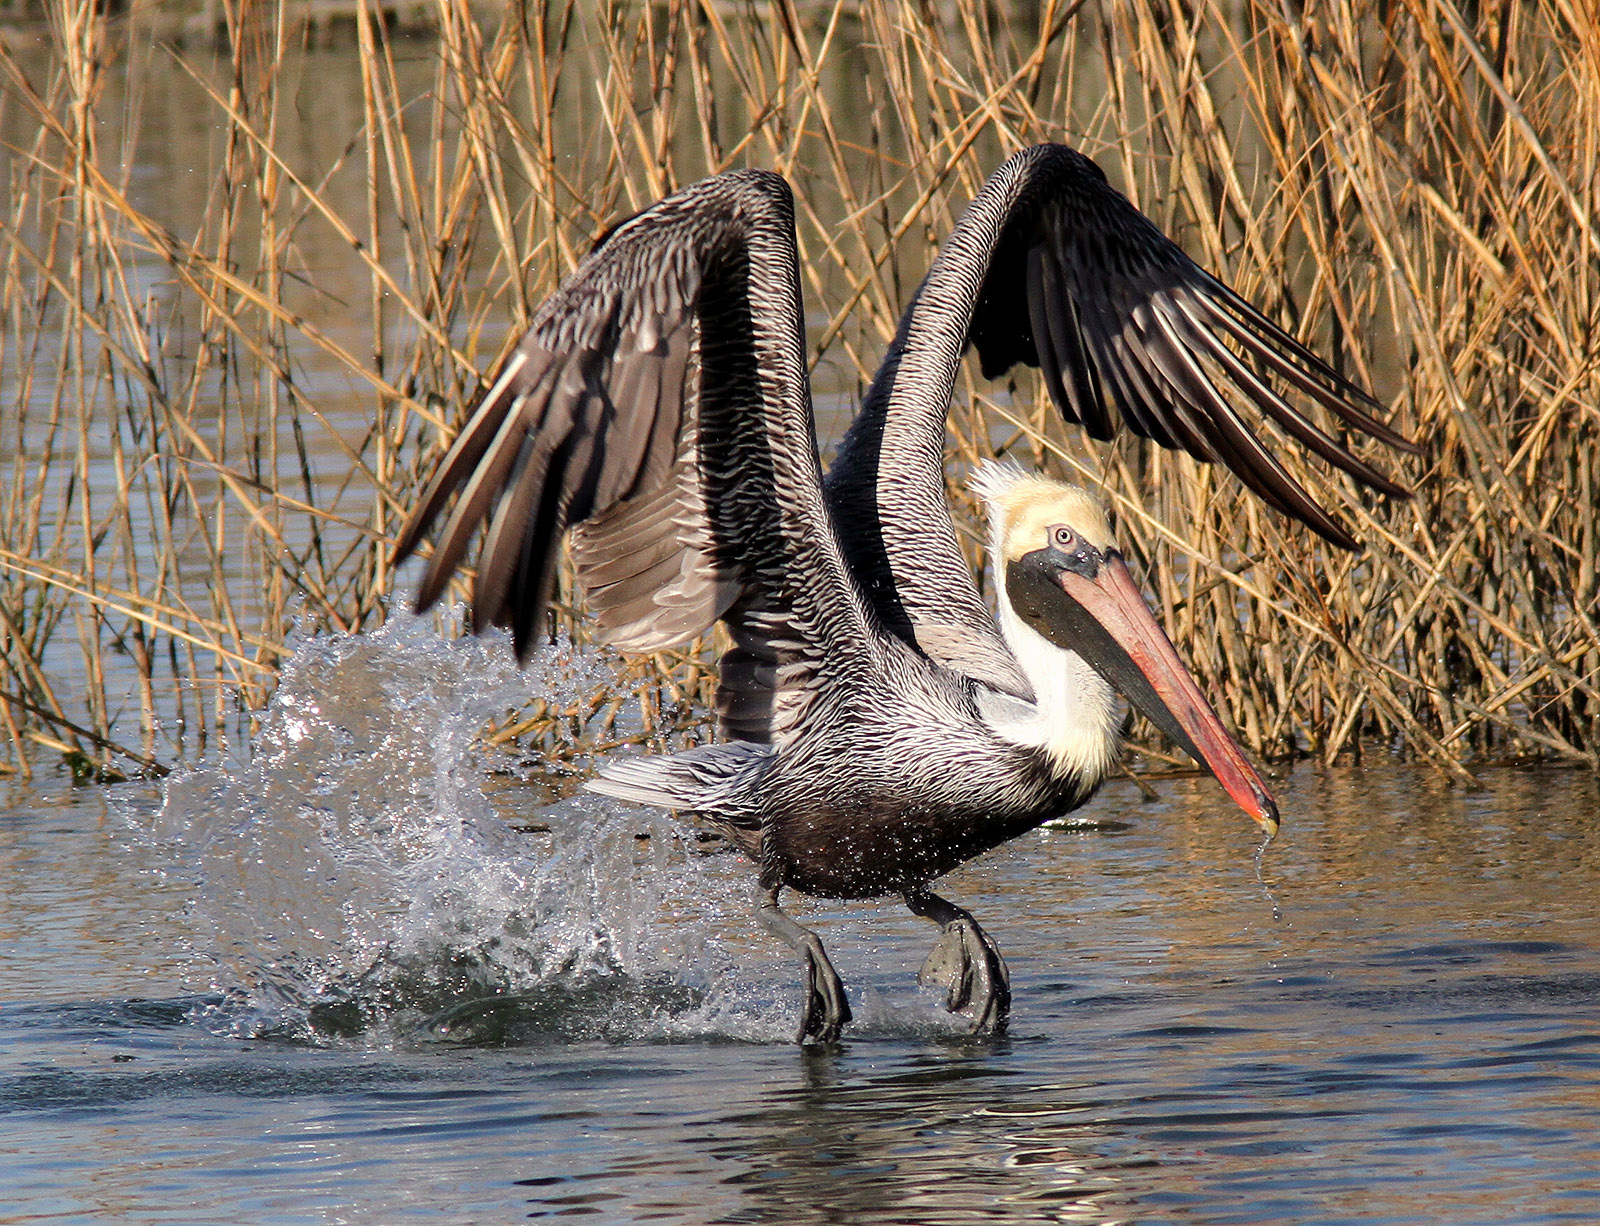 pelican lifting off from marsh in Louisiana